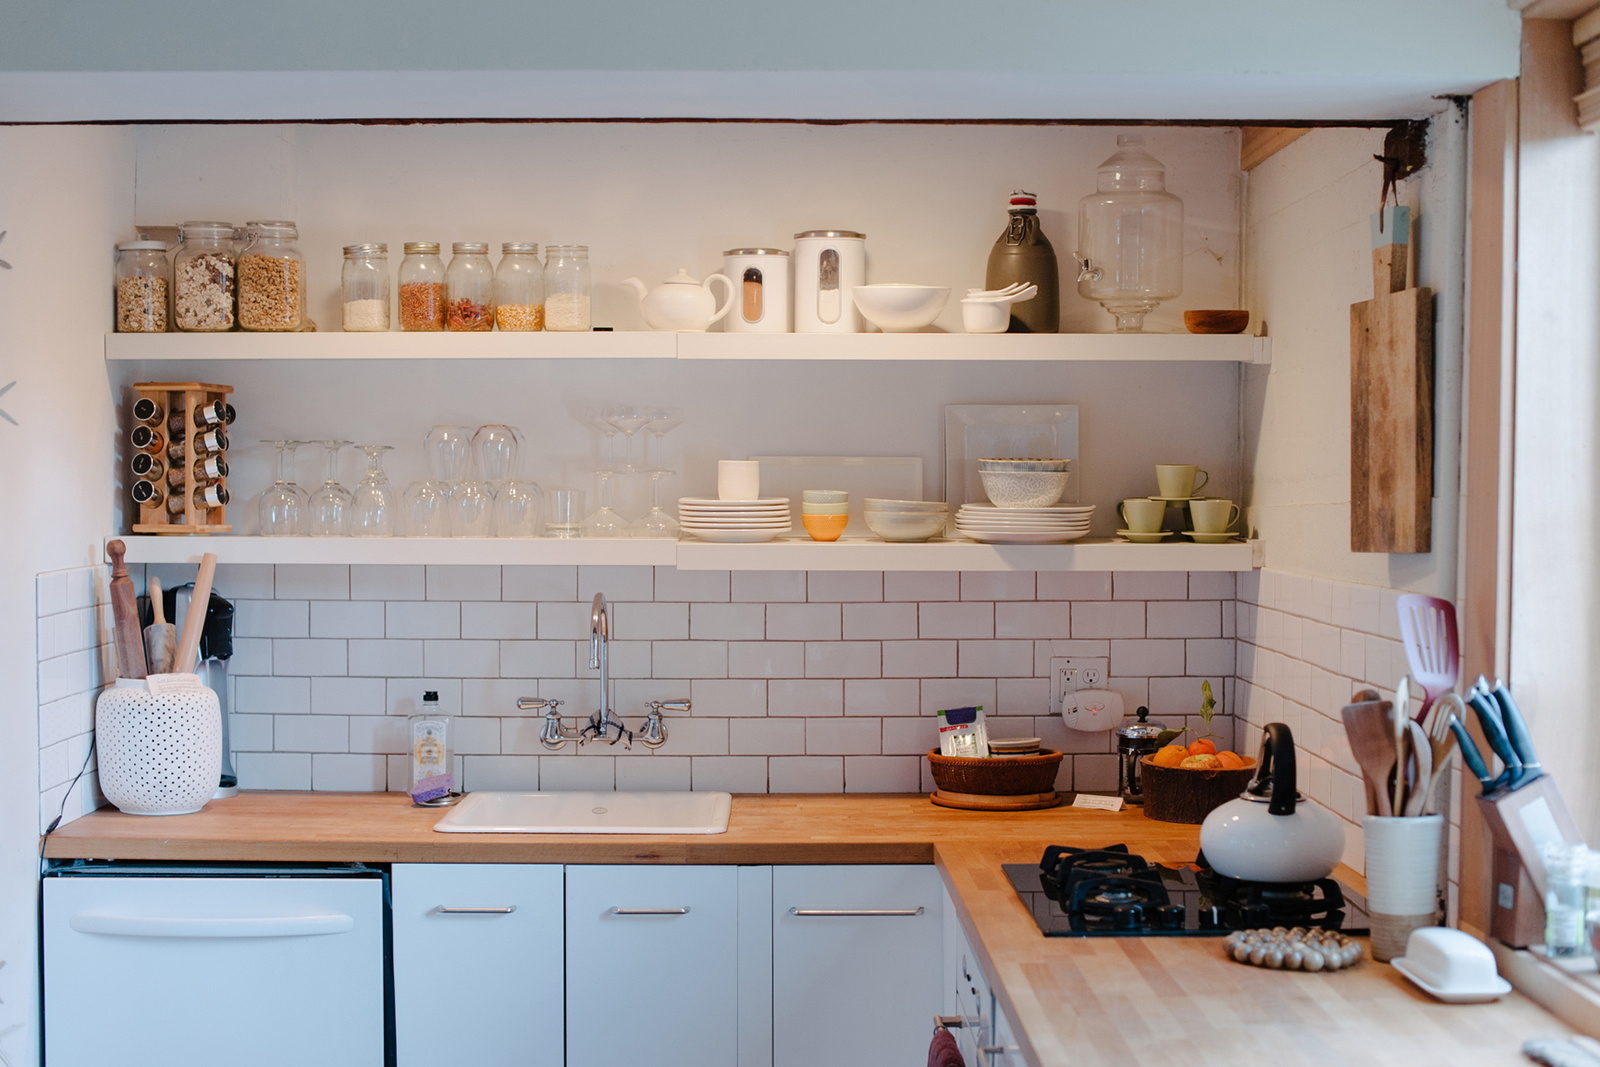 tips for kitchen remodeling kitchen remodelers Remodeling Regret 5 Kitchen Layout Ideas to Avoid